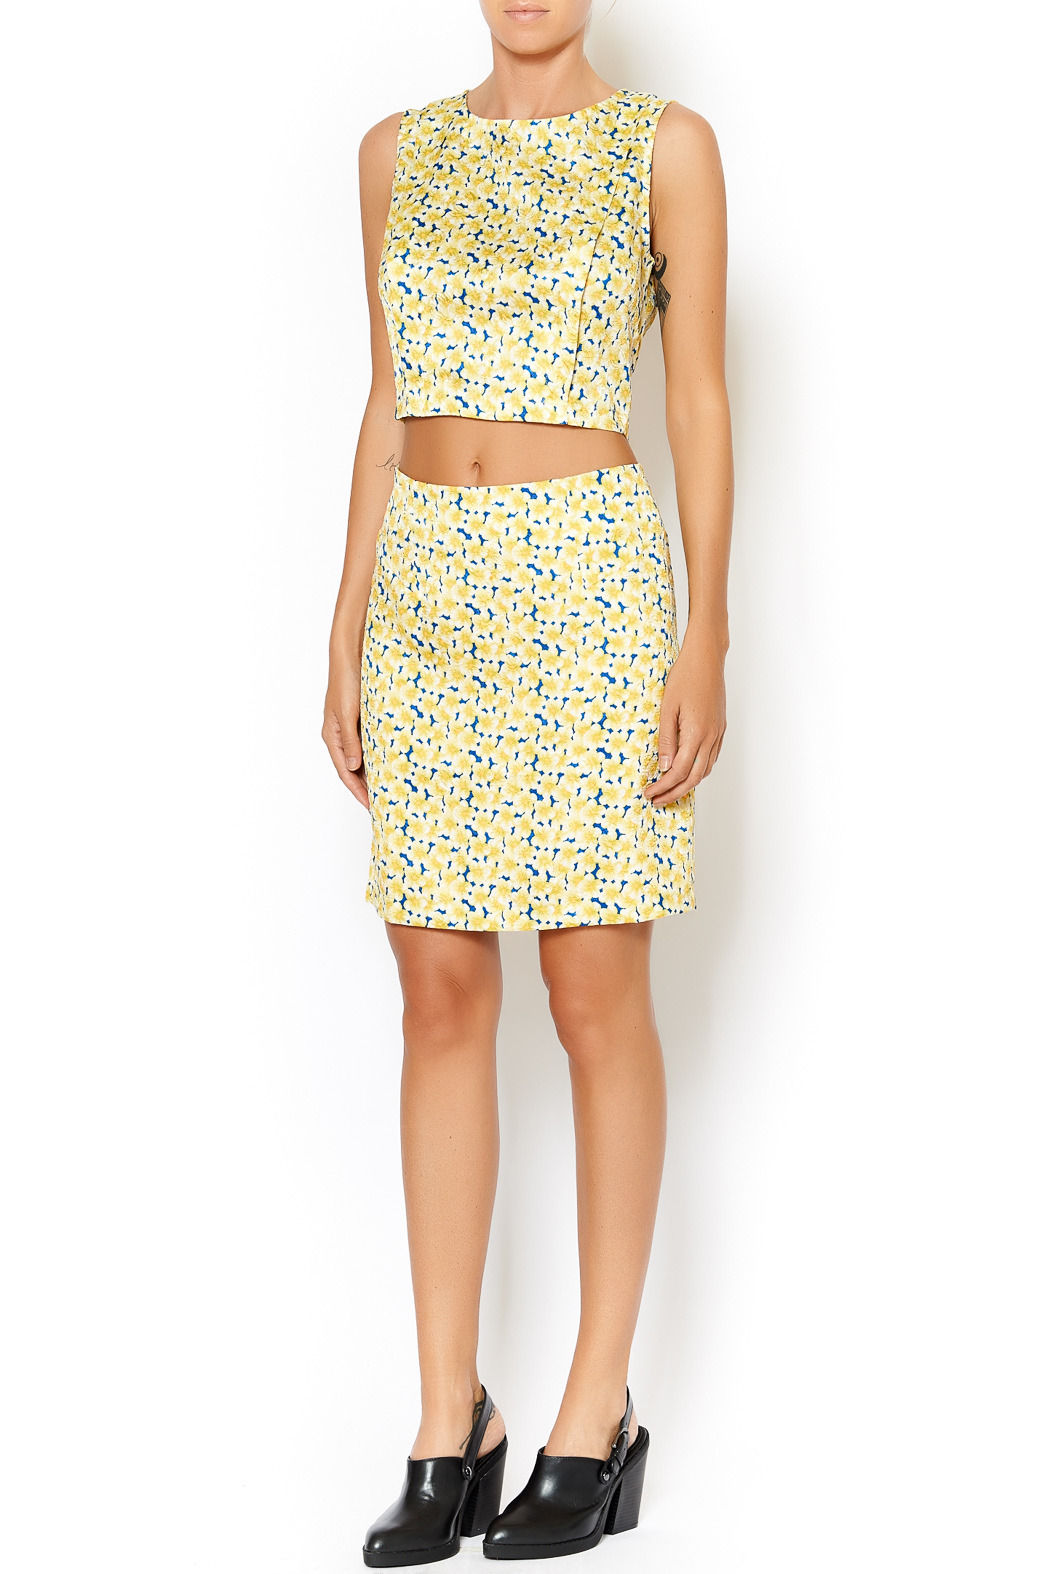 I. Madeline Yellow Daisy Crop Top - Side Cropped Image